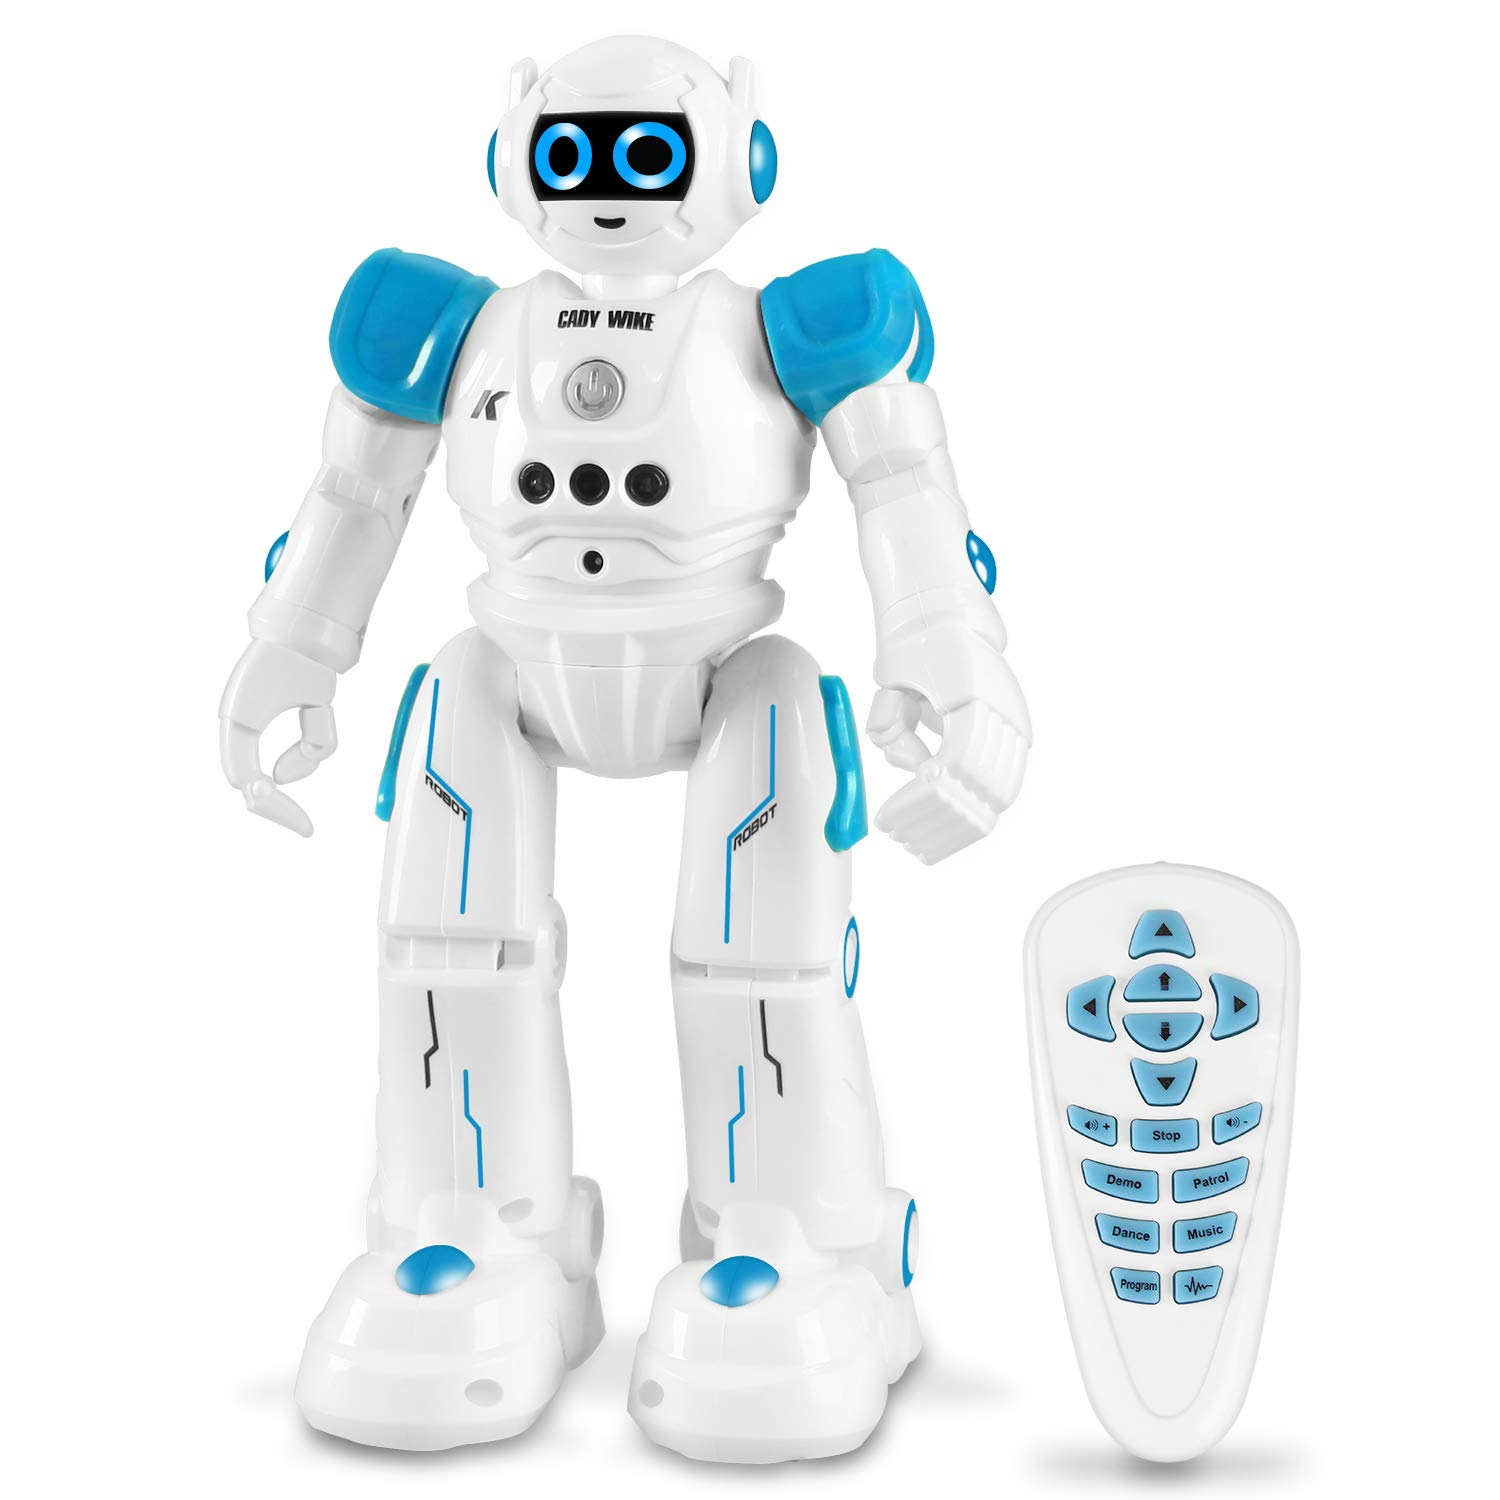 IHBUDS Robot Toy for Kids, Smart Robot Kit with Remote Control & Gesture Control, Perfect Robotics Gifts for Boys Girls Learning Programmable Walking Dancing Singing (Blue) by IHBUDS (Image #1)